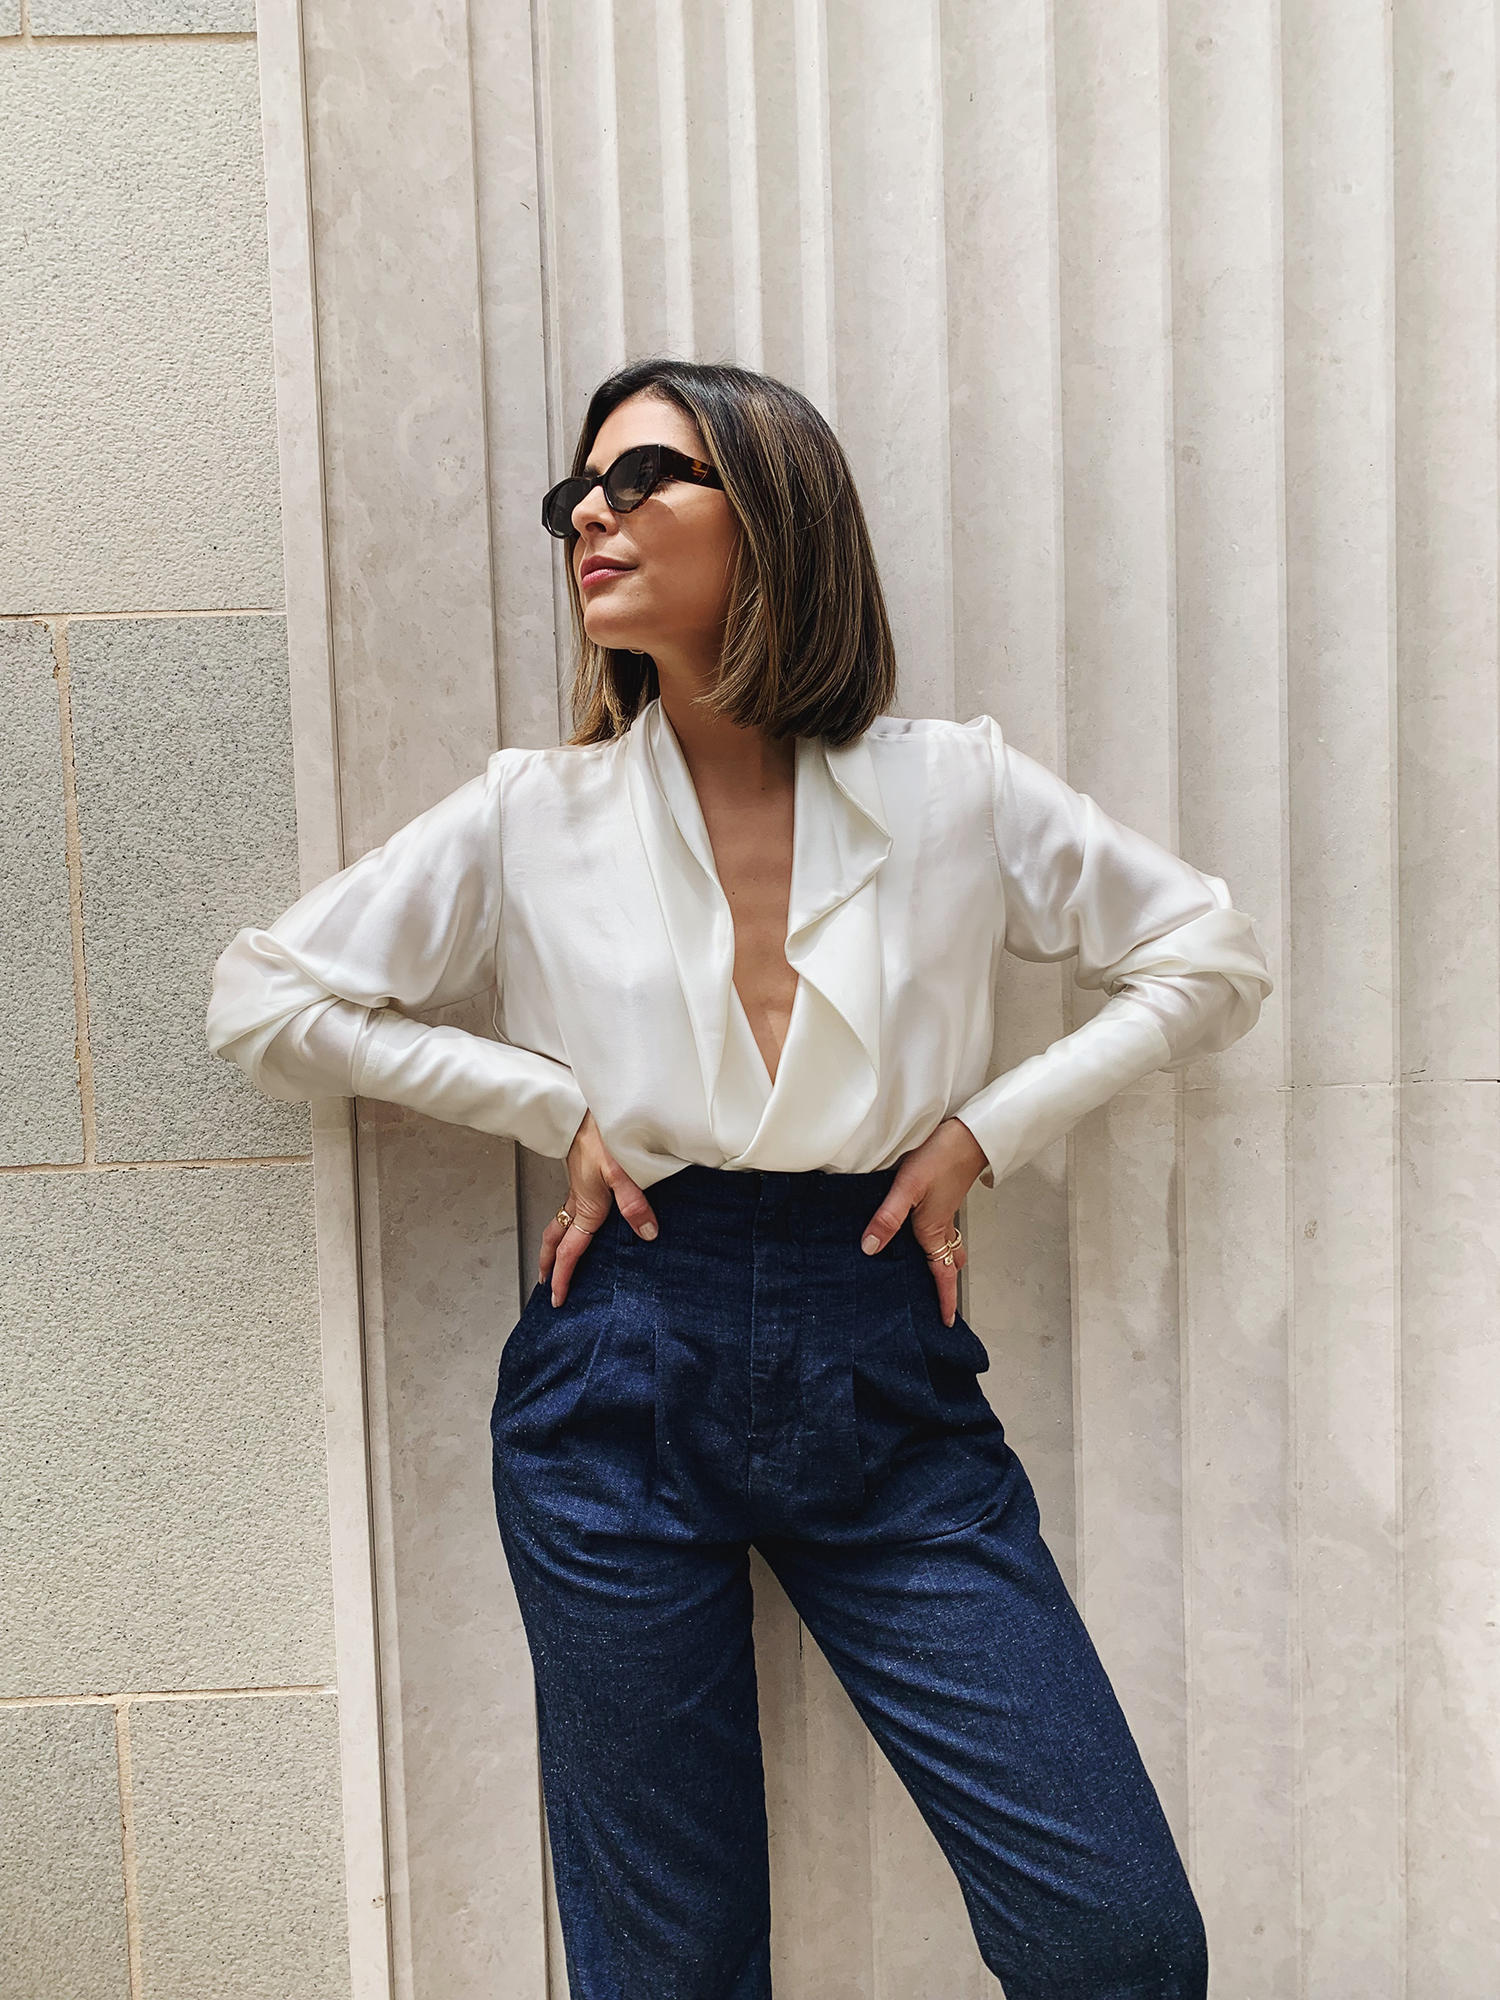 stylish white tops for summer, chic white tops, white blouse, chic blogger style, pam hetlinger style | the girl from panama